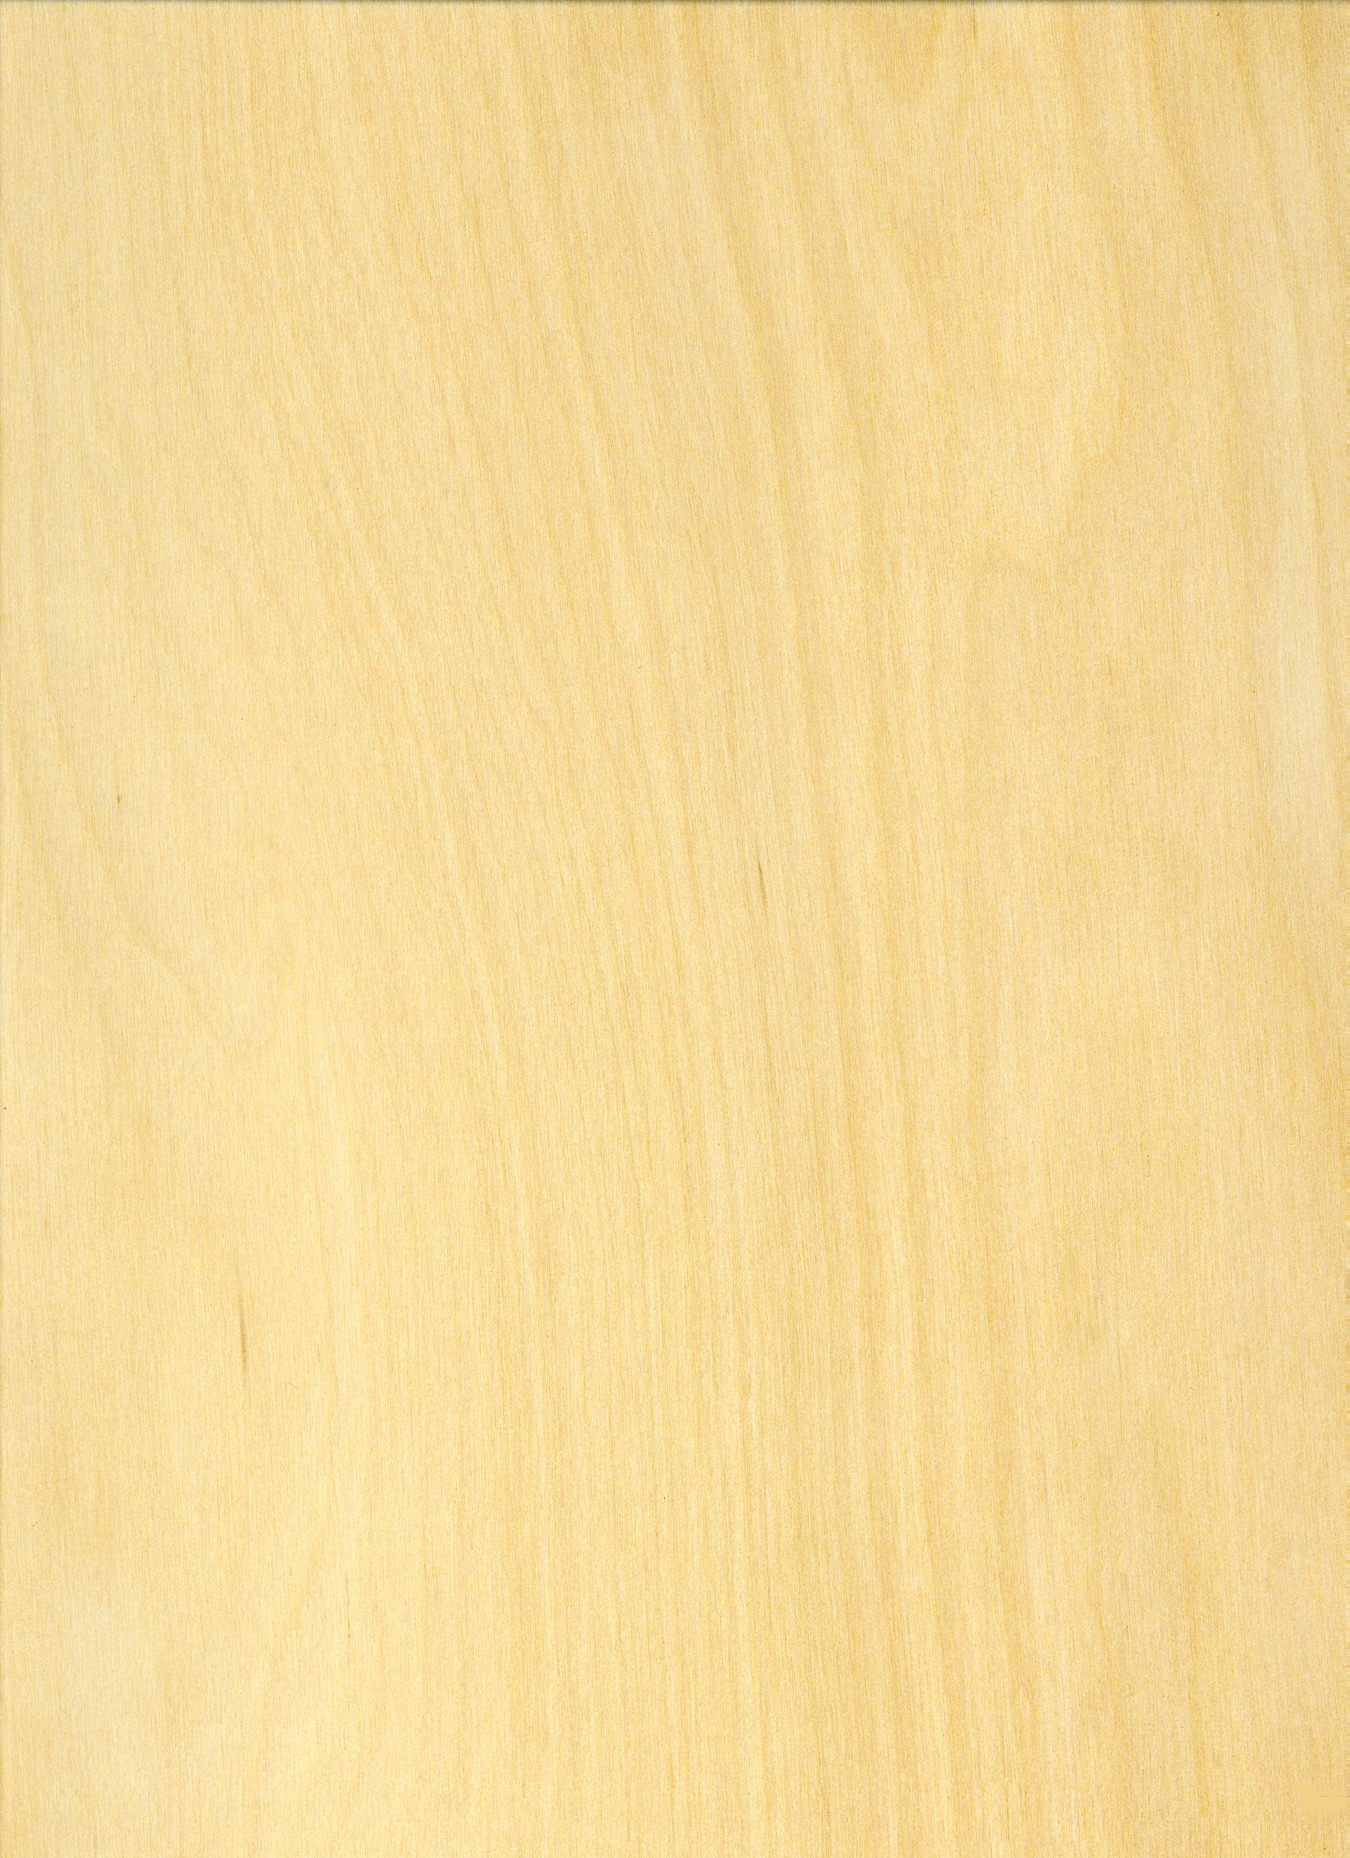 Maple Wood Grain Pattern